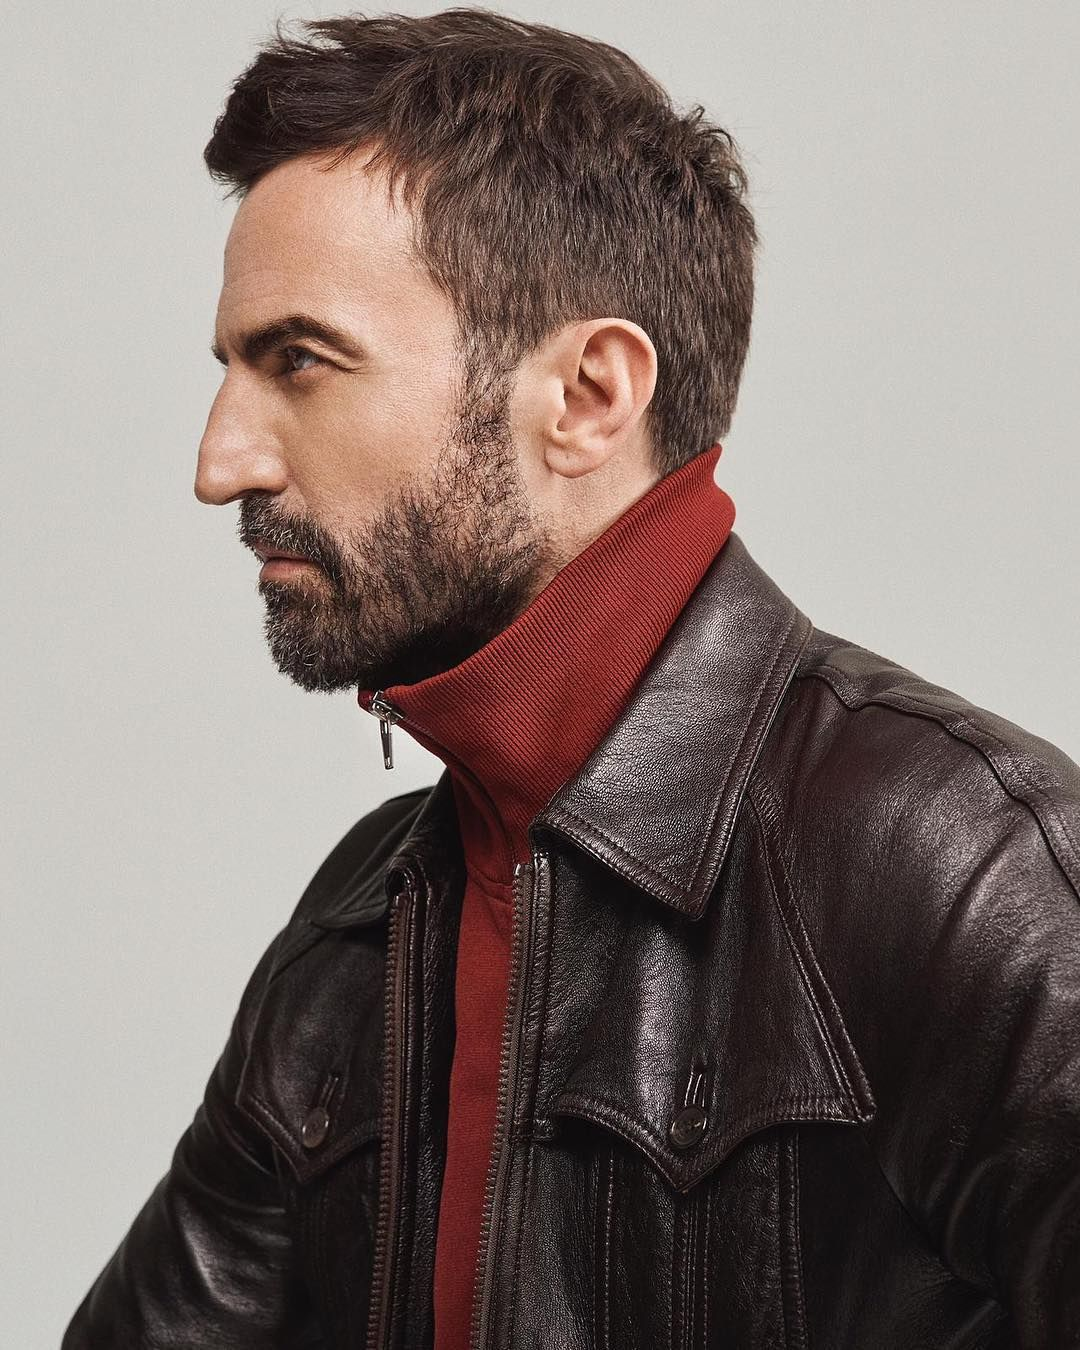 On Instagram Profile Pic Annie Powers With Images Pics Instagram Nicolas Ghesquiere